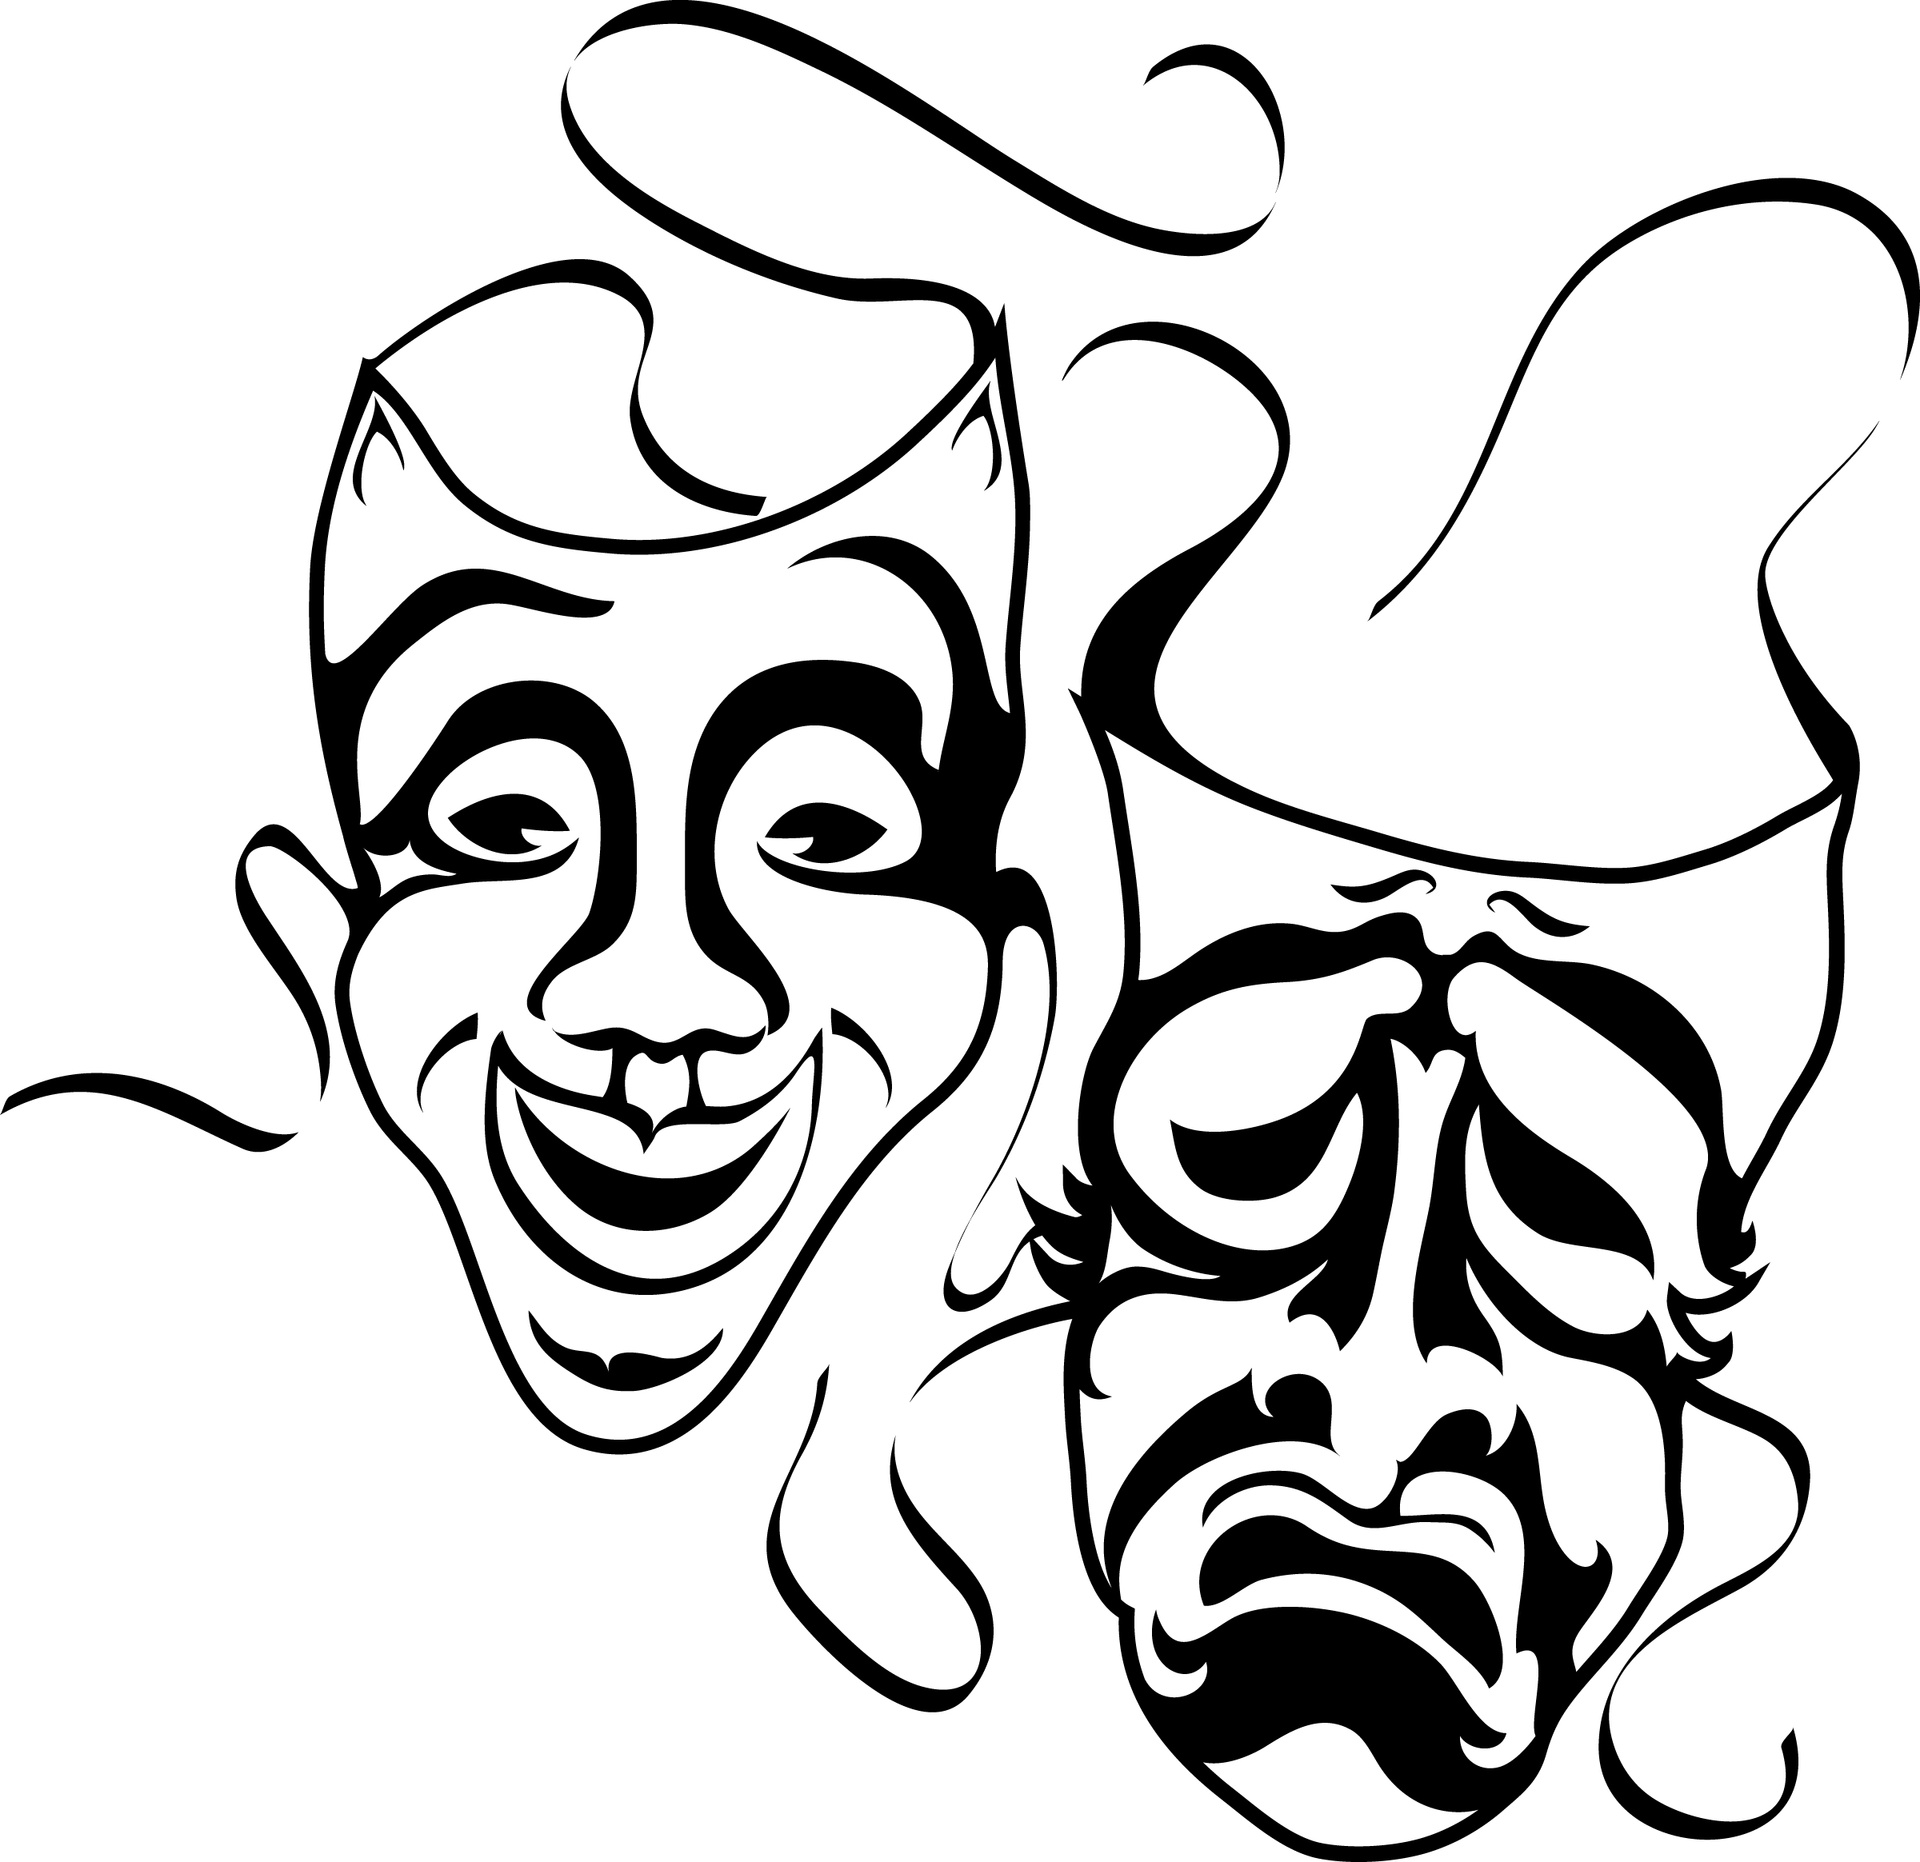 Mask clipart black and white 6 » Clipart Station.